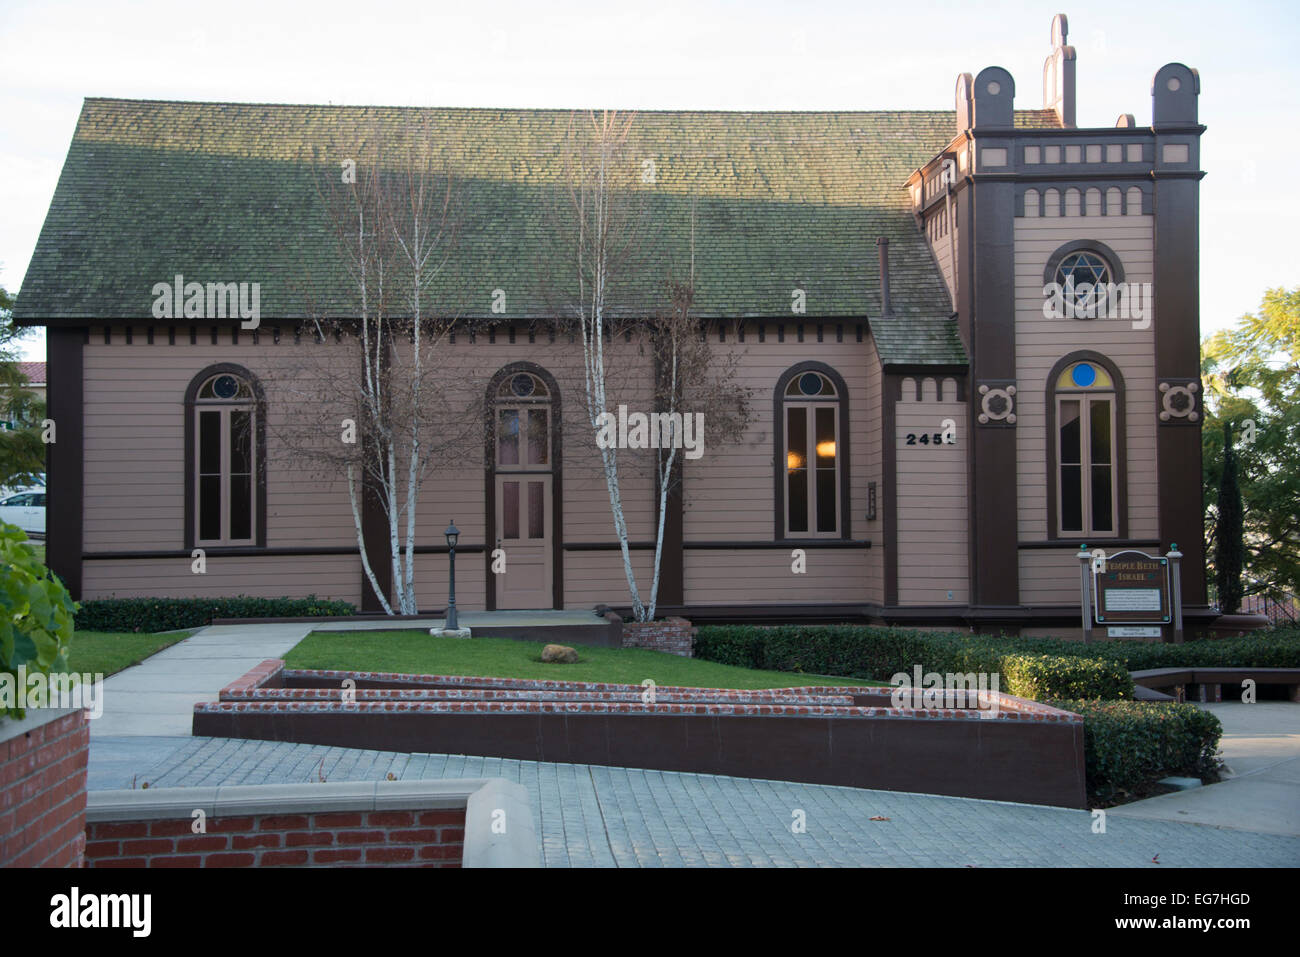 Beth Israel synagogue in Heritage Square,a street of transplanted historic buildings, in Old Town, San Diego, California, - Stock Image